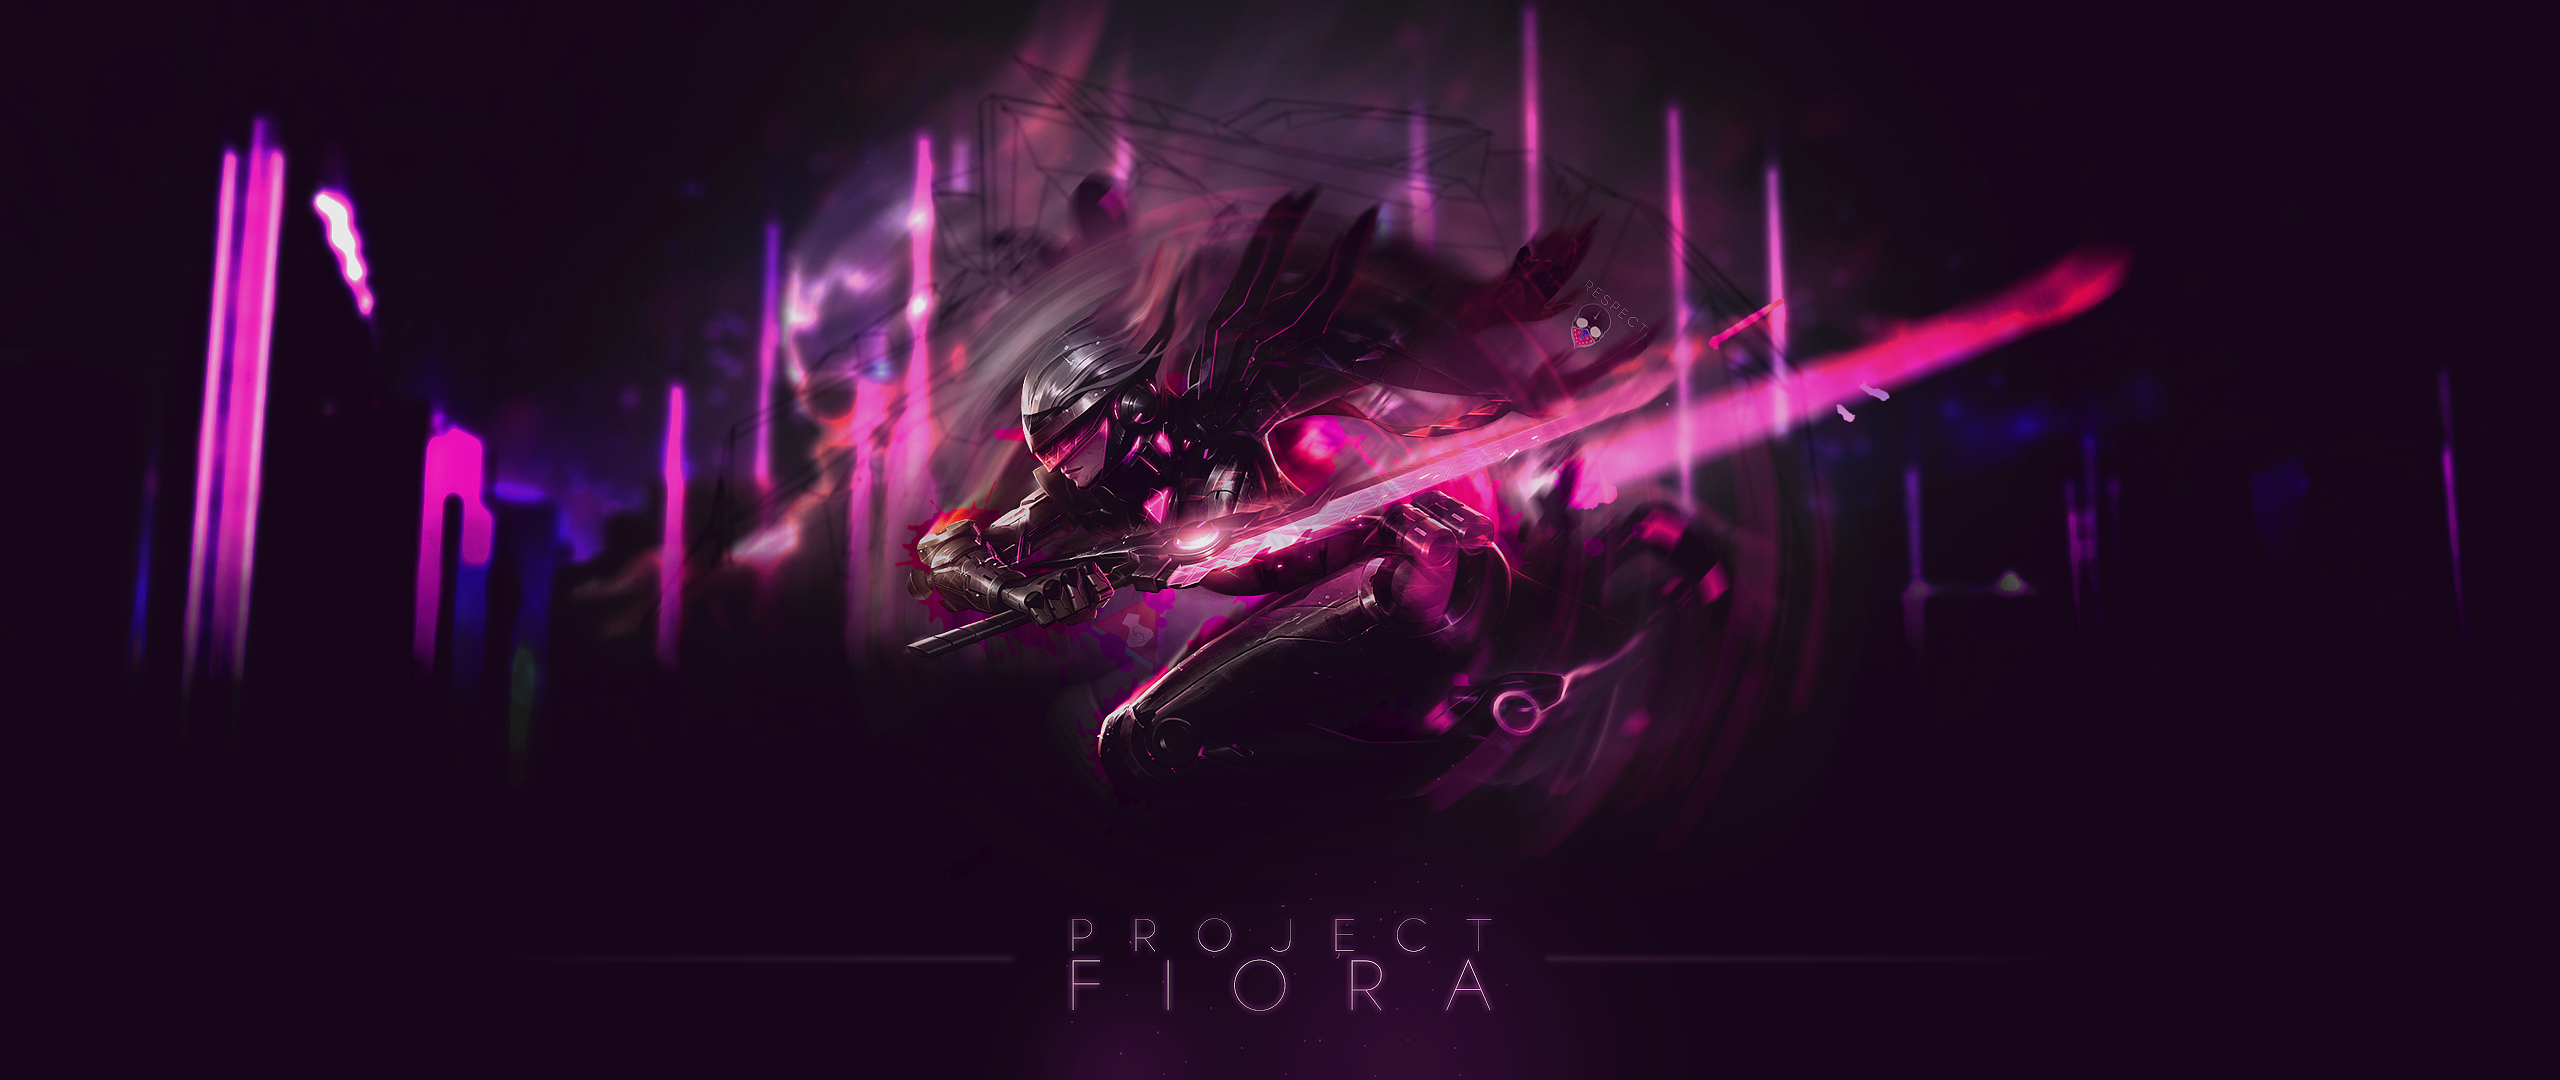 Project Fiora Wallpaper By Magoshadow On Deviantart